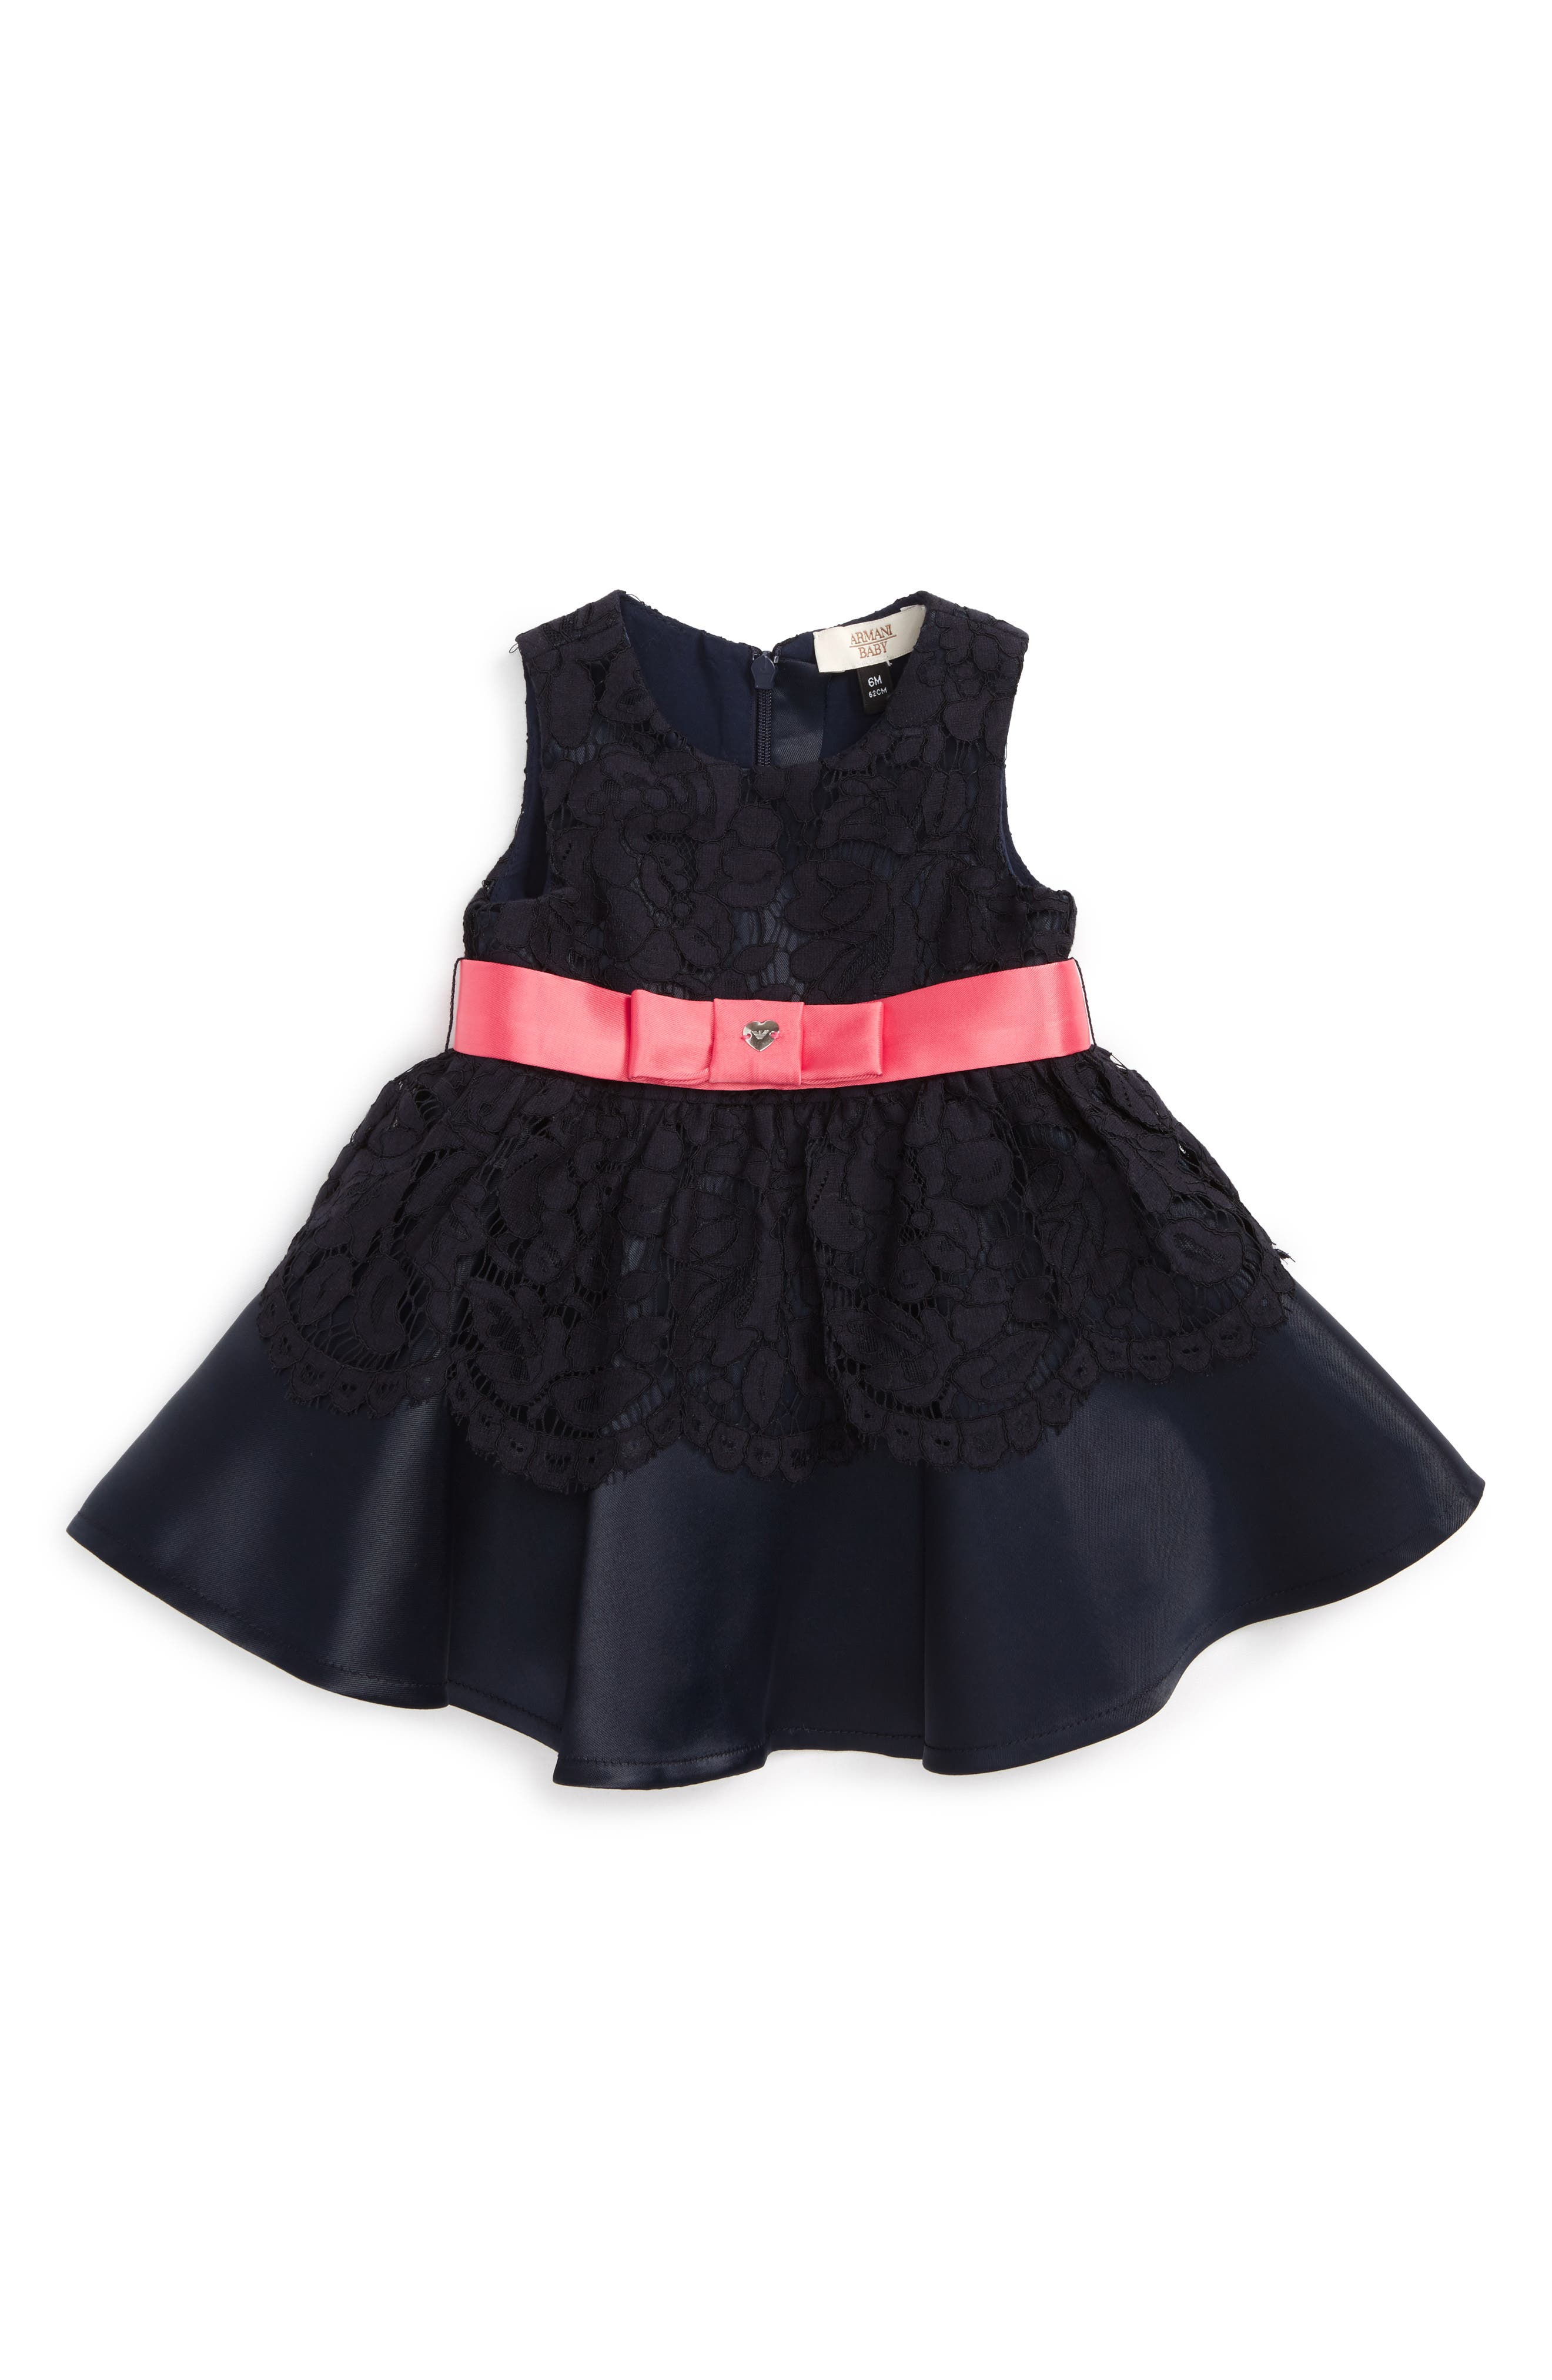 Alternate Image 1 Selected - Armani Junior Lace Party Dress (Baby Girls)